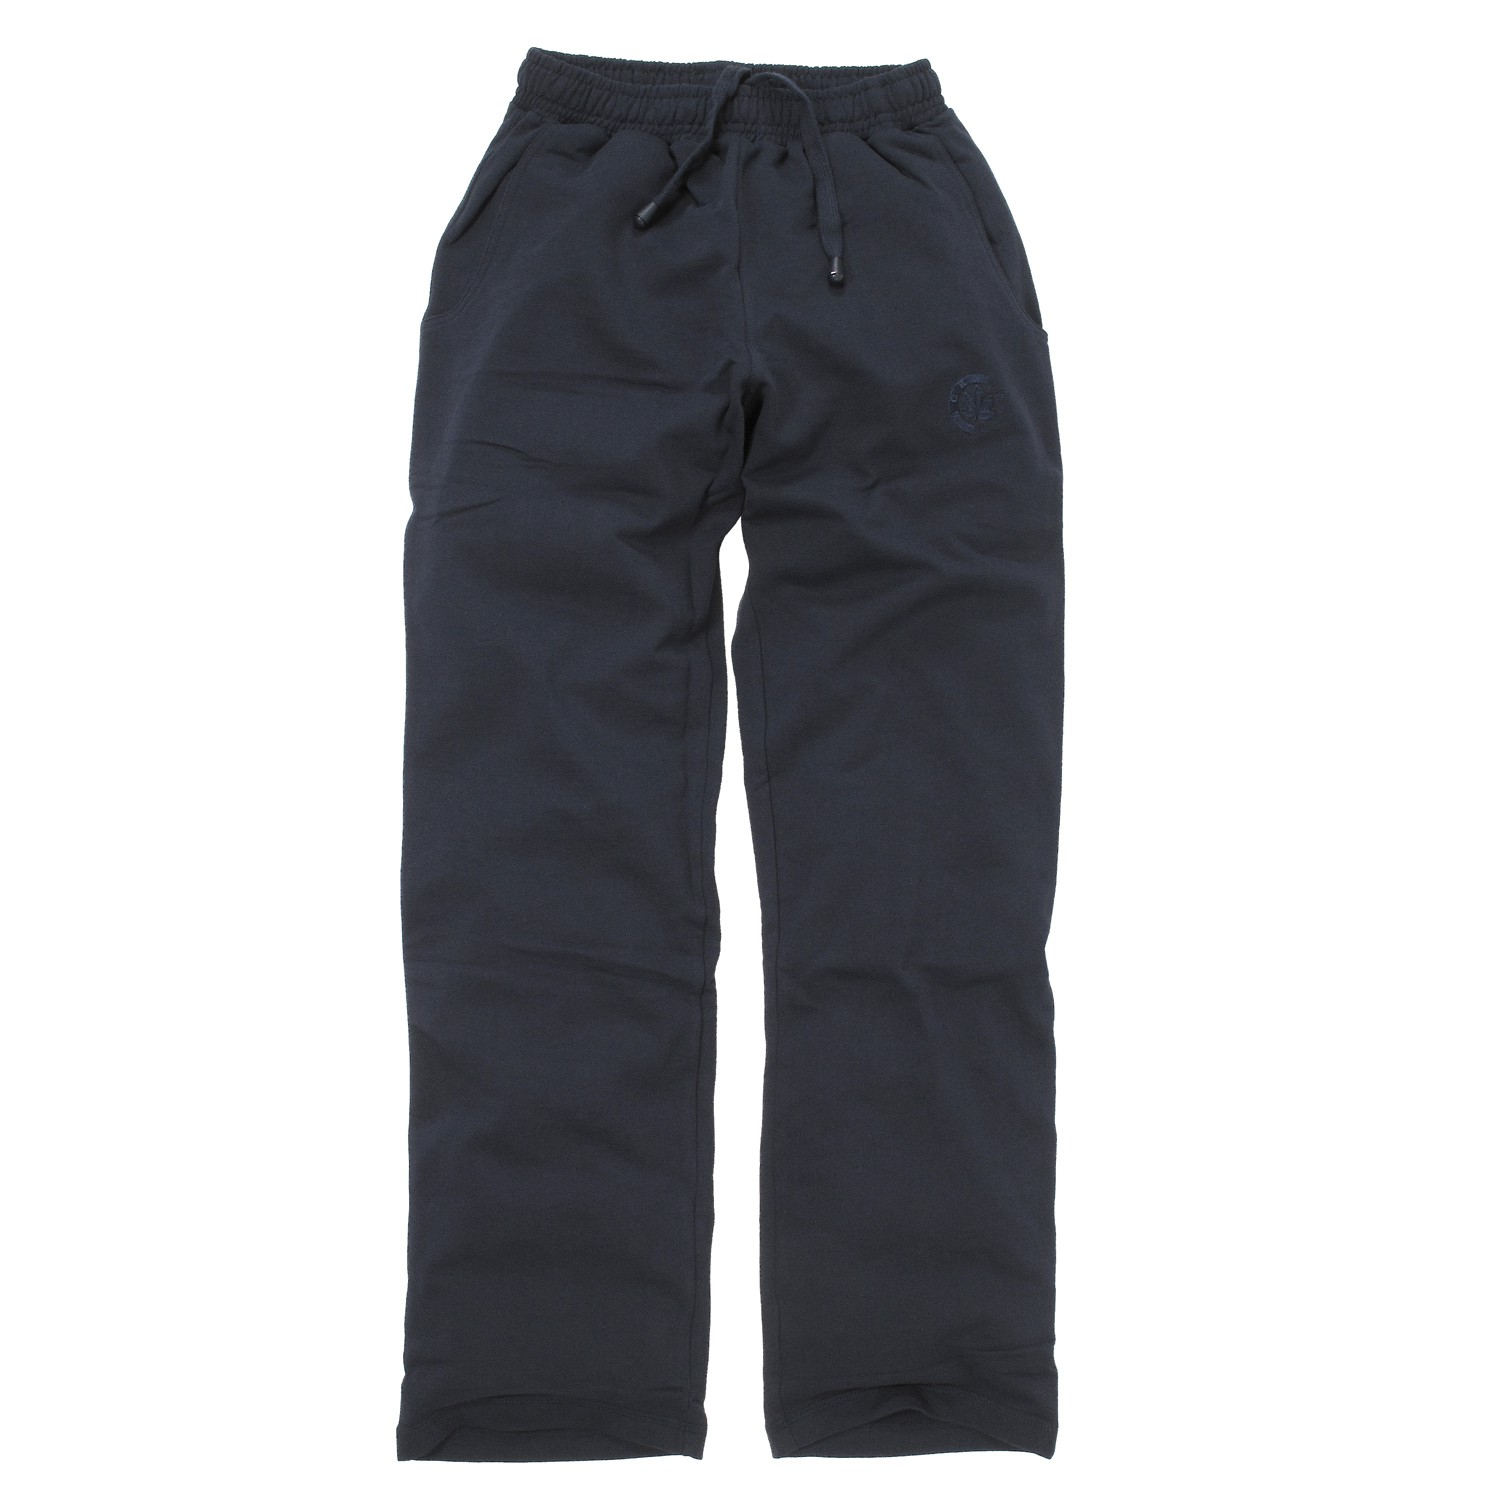 Detail Image to Jogging pants in dark blue by Ahorn Sportswear up to oversize 10XL